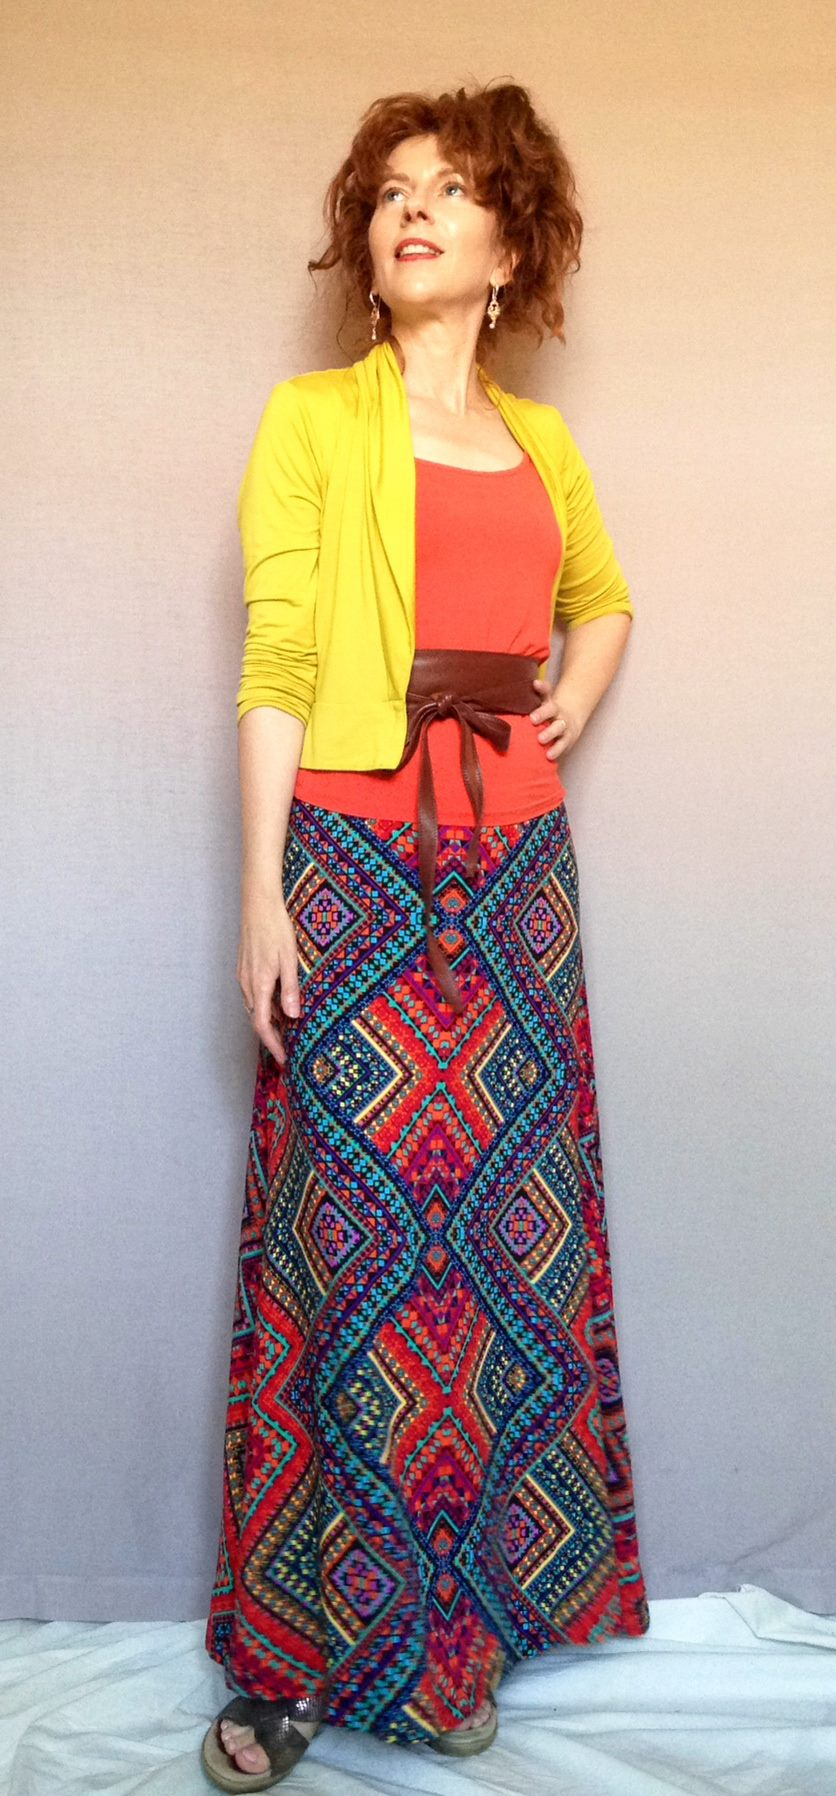 The coming together of my Spicy palette and my A-line maxi and obi belt as signature style pieces